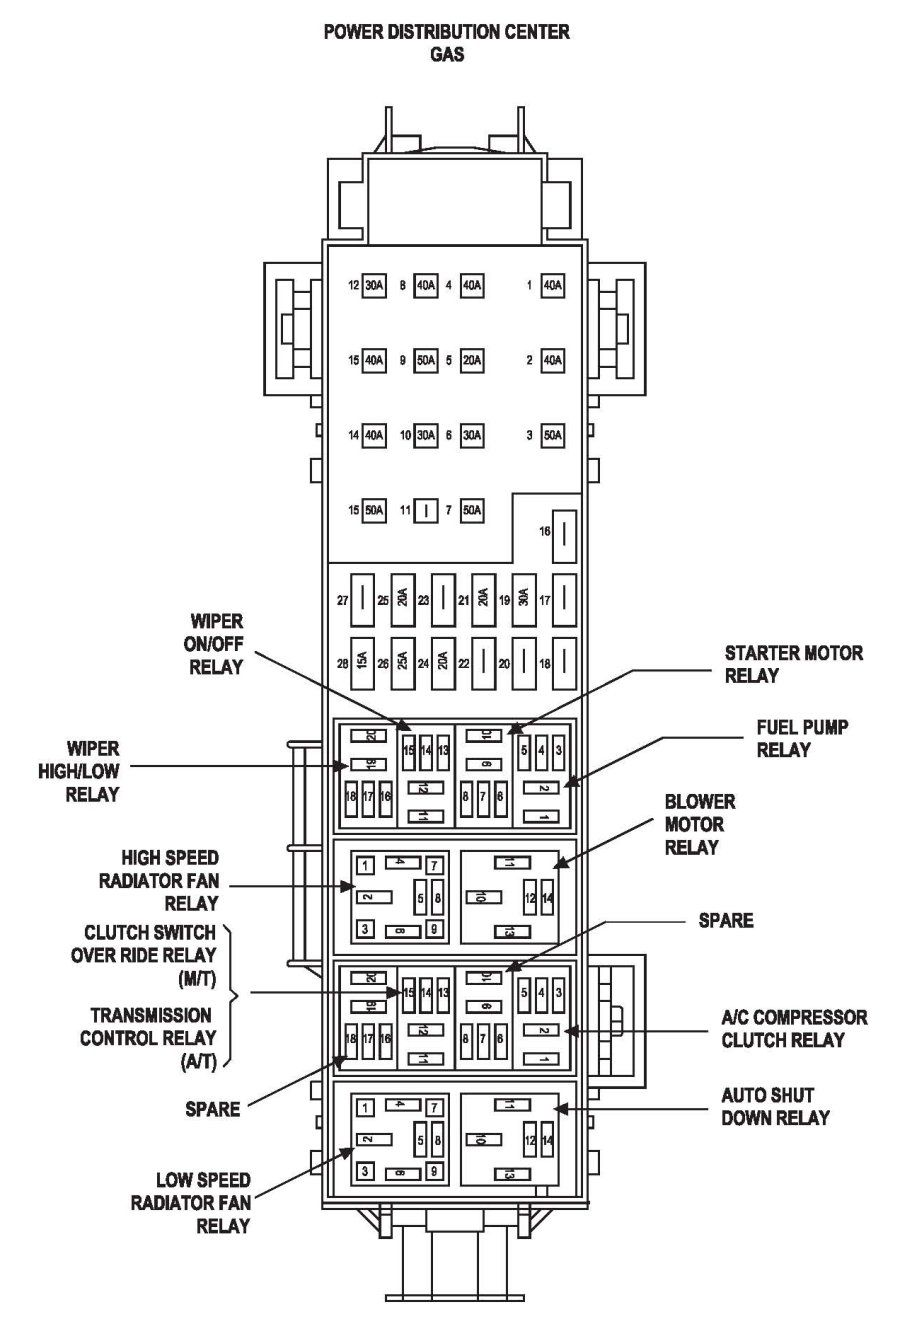 Jeep Fuse Wiring Real Diagram Peterbilt 379 Panel 1997 Liberty Box Image Details Rh Pinterest Com Outlet